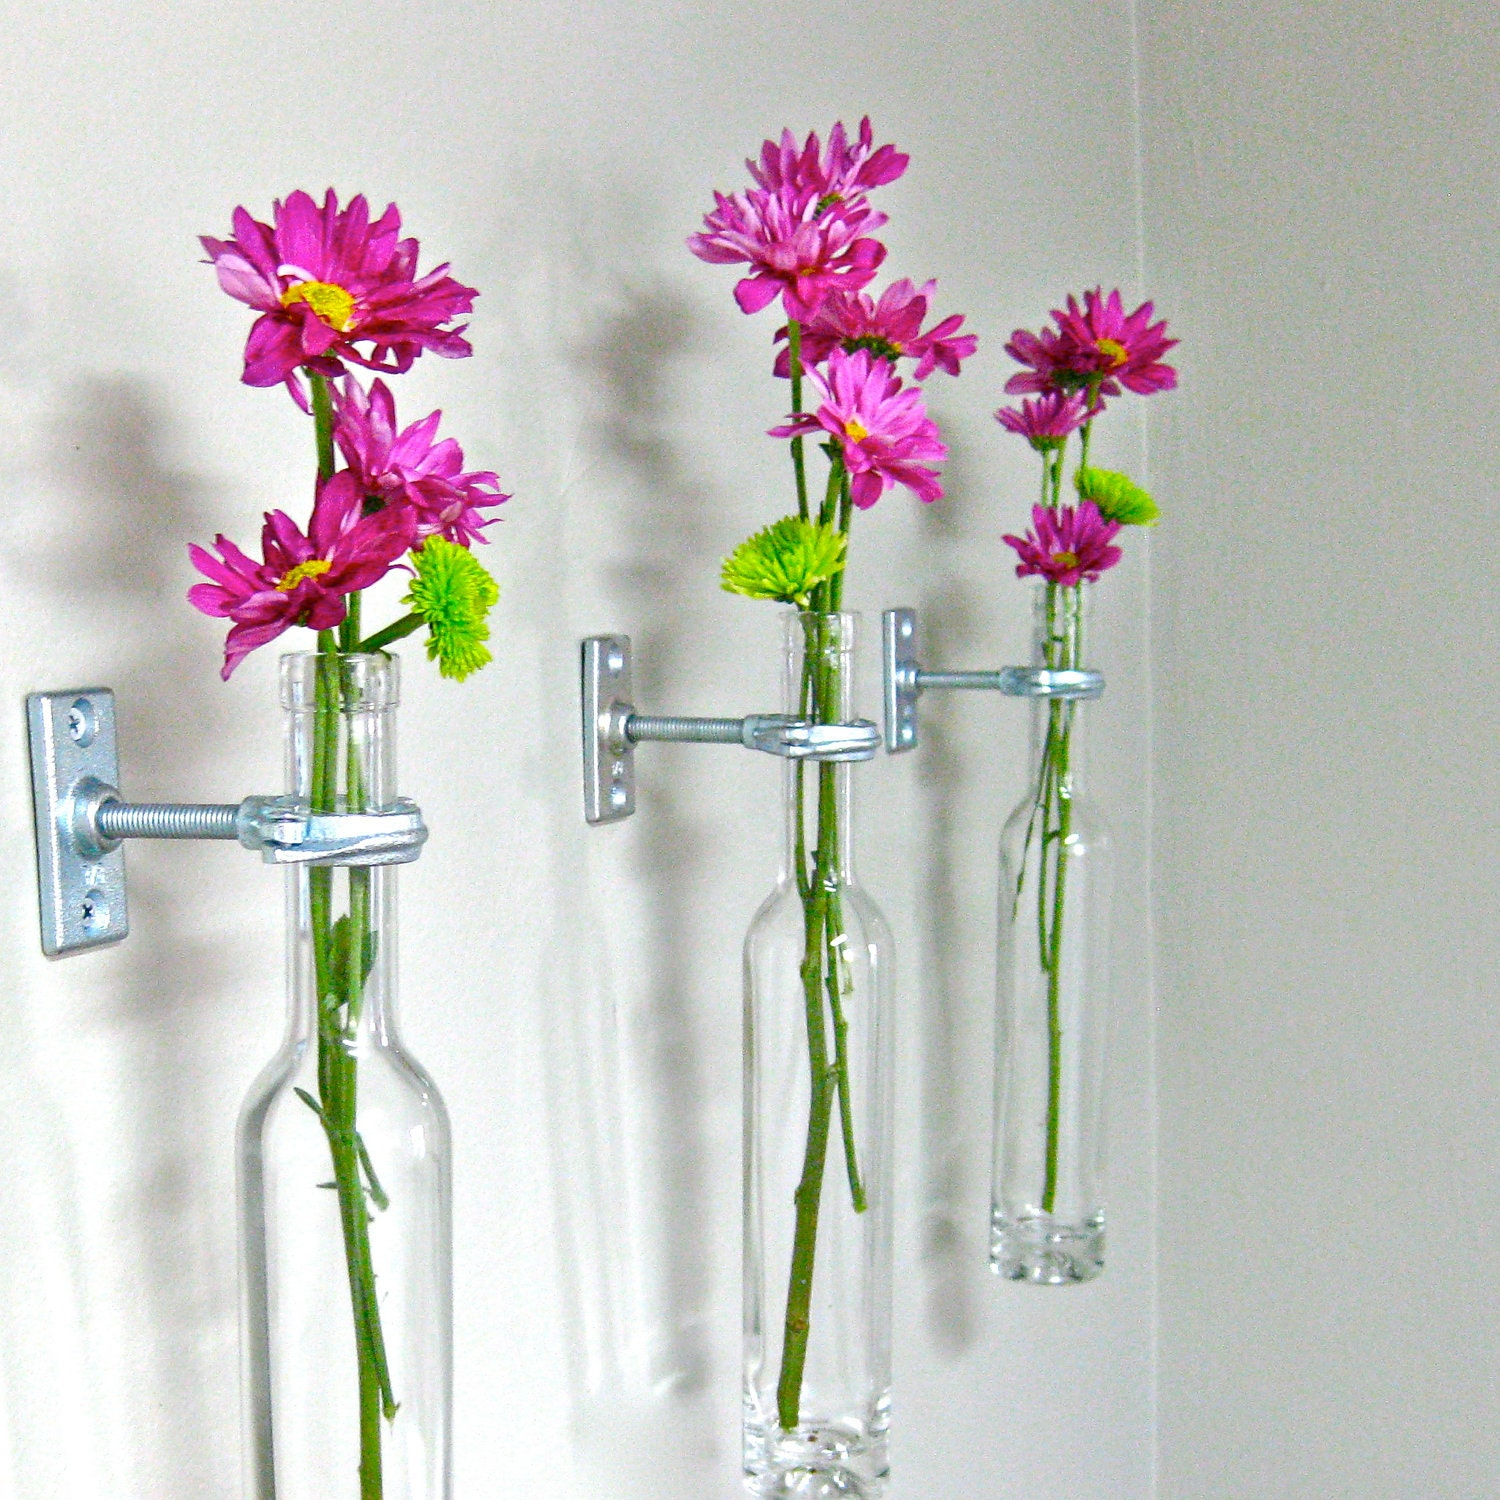 12 wine bottle wall flower vases wall vase wall decor - Flower vase decoration ideas ...